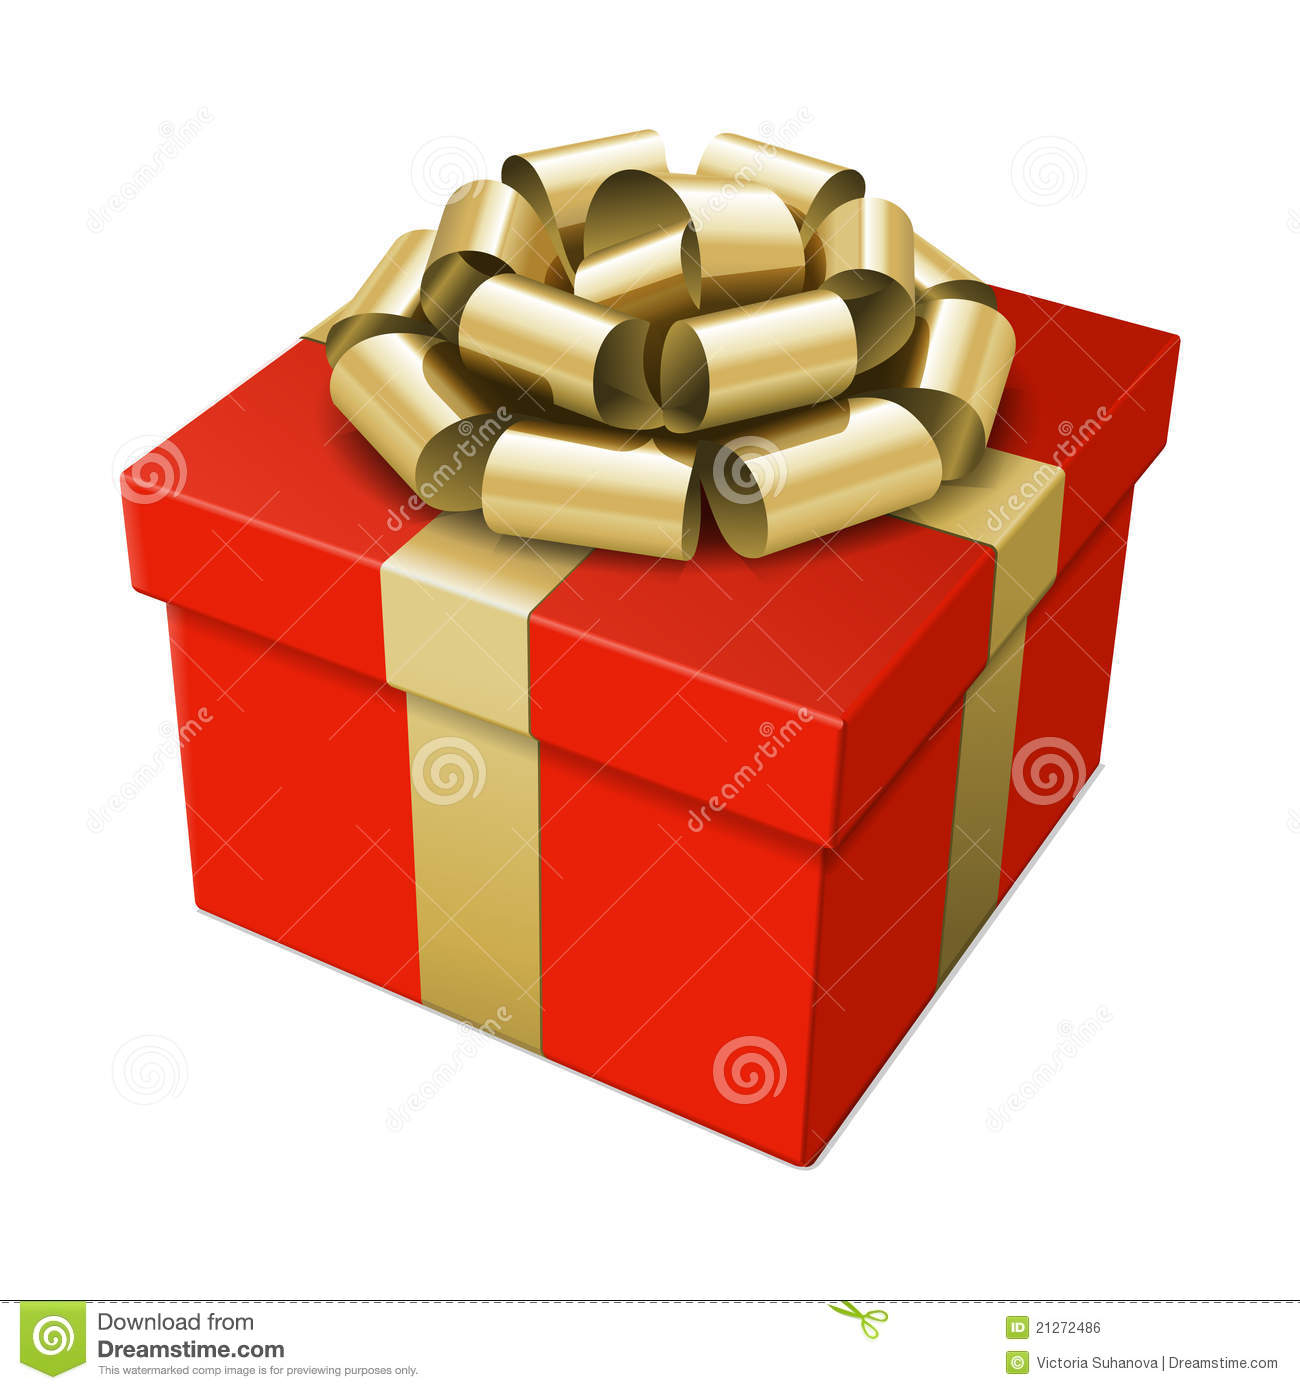 Wrapped gift box with bow royalty free stock image